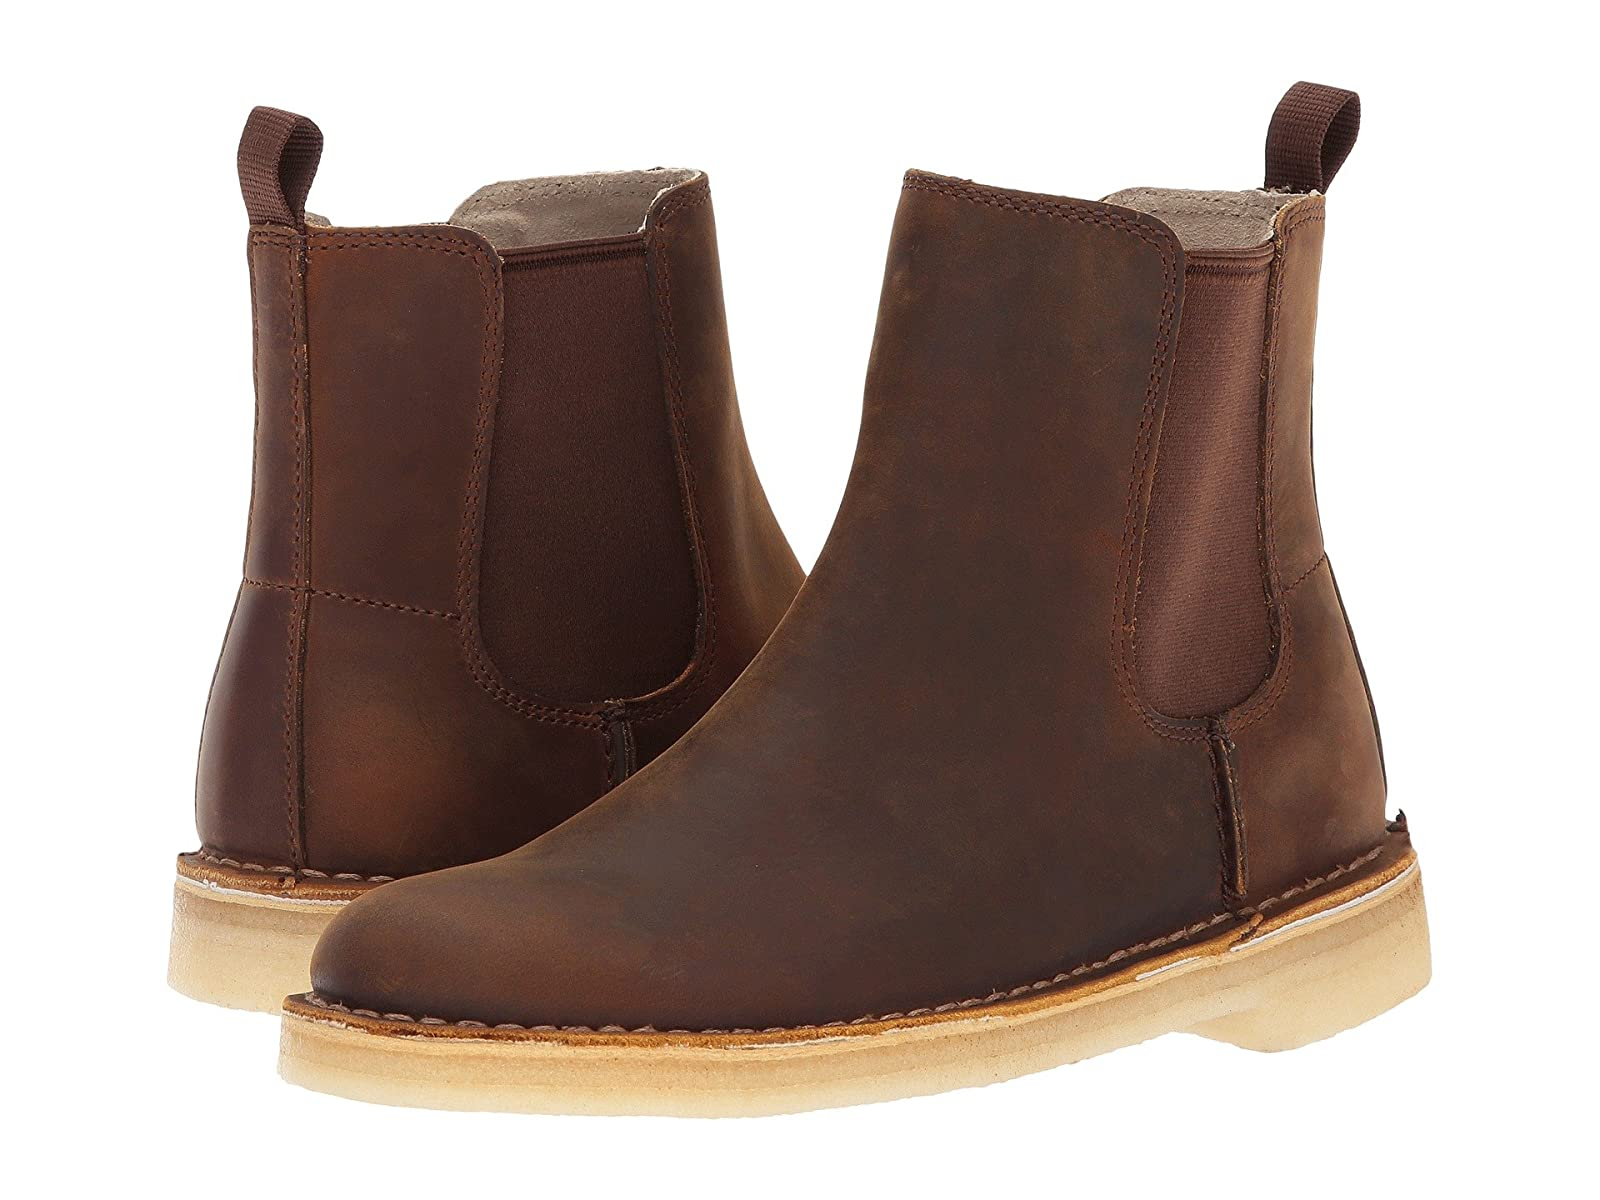 Clarks Desert PeakCheap and distinctive eye-catching shoes